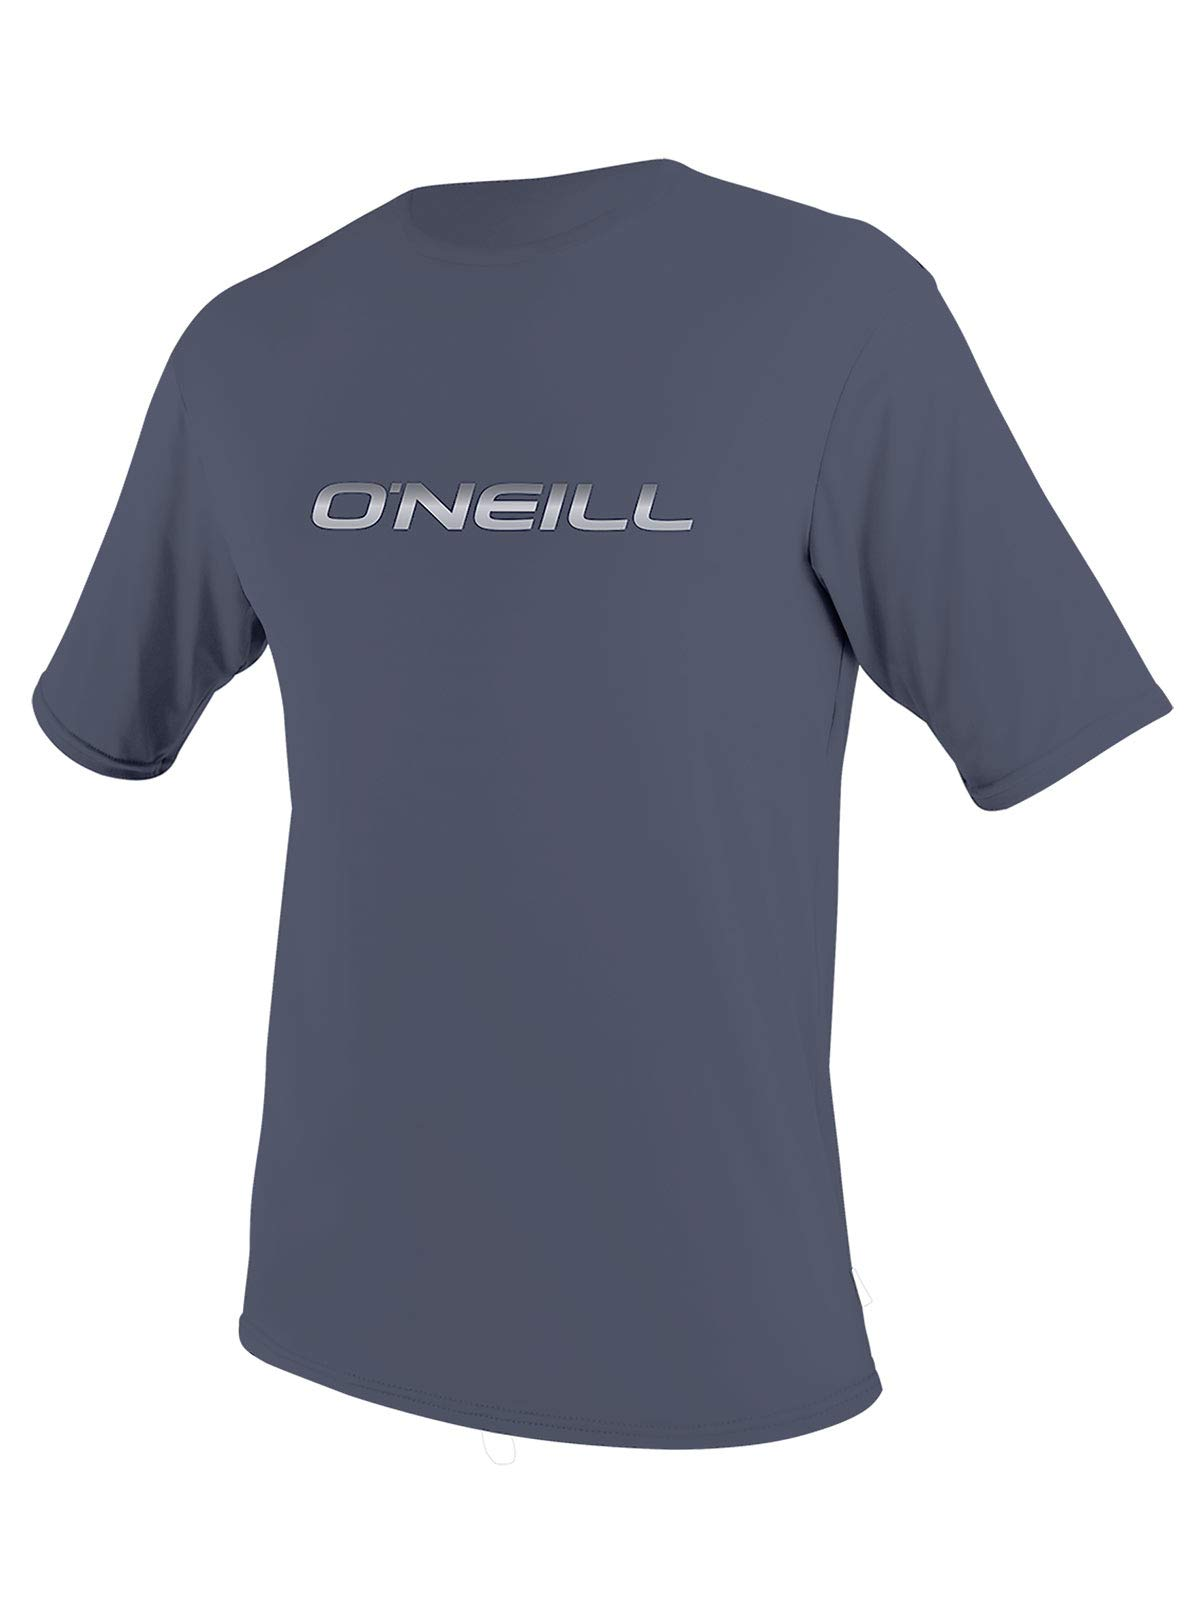 O'Neill Kids Basic Shortsleeve sunshirt 8 Denim (3422IS) by O'Neill Wetsuits